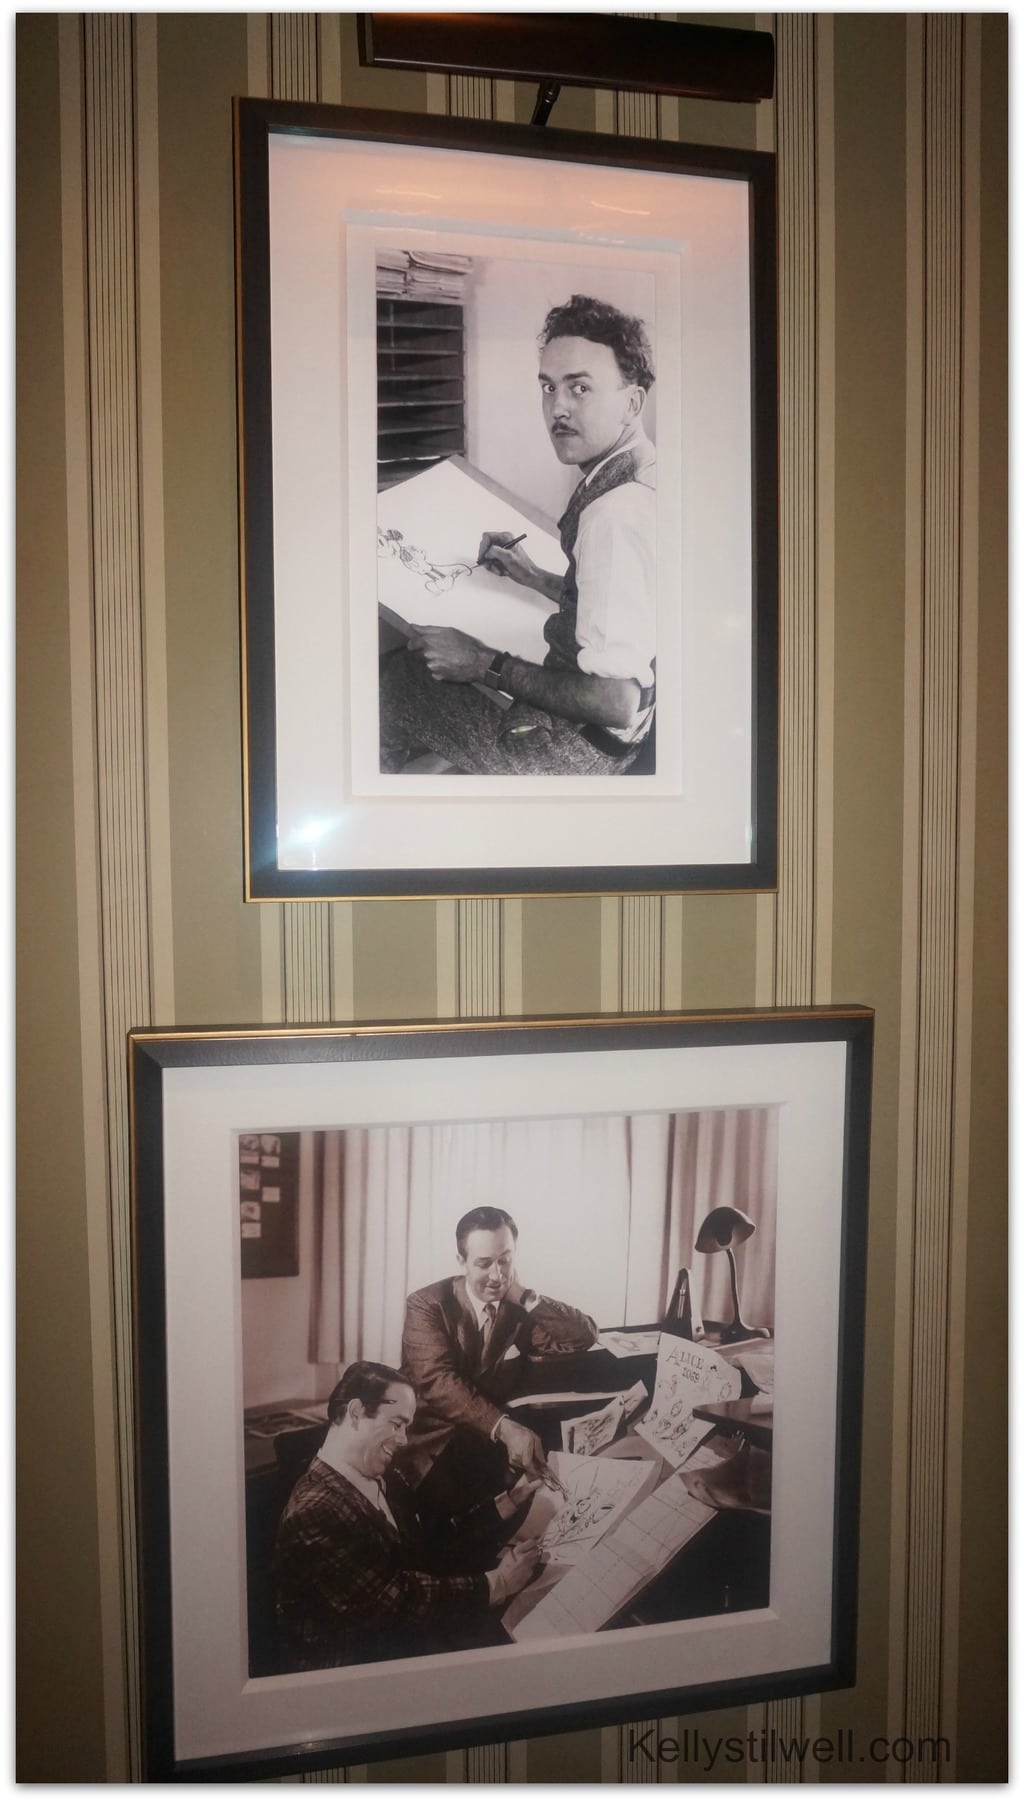 Disney's 1901 Lounge portraits